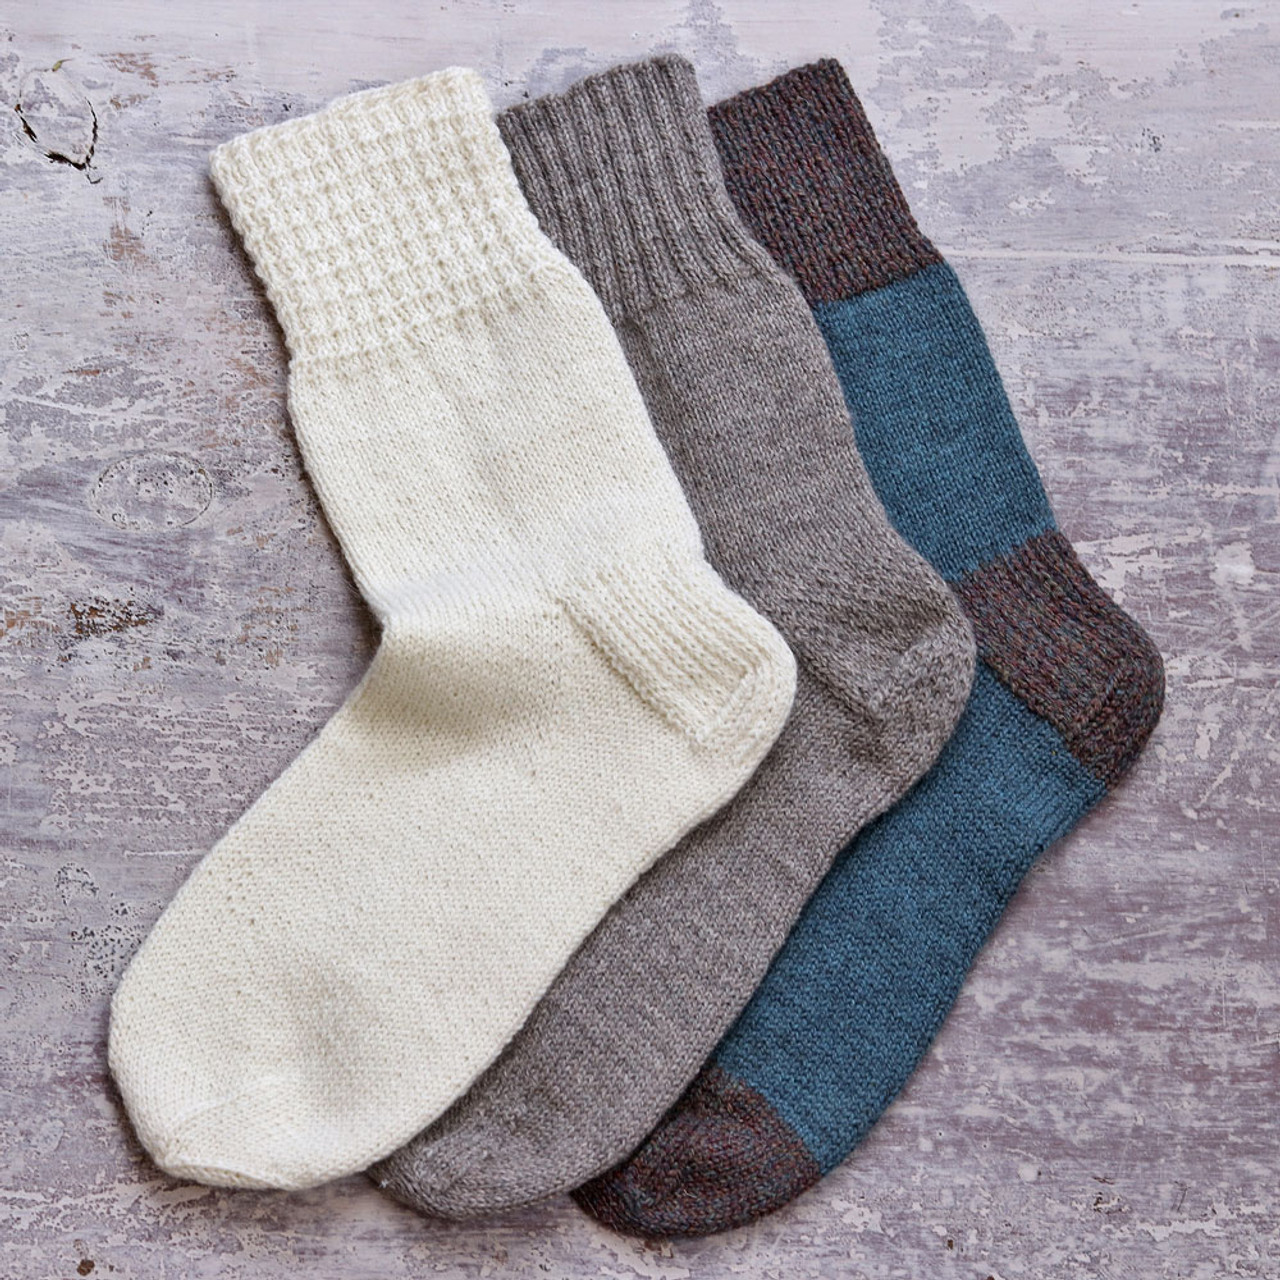 One Sock Pattern by Kate Atherley (pattern only)